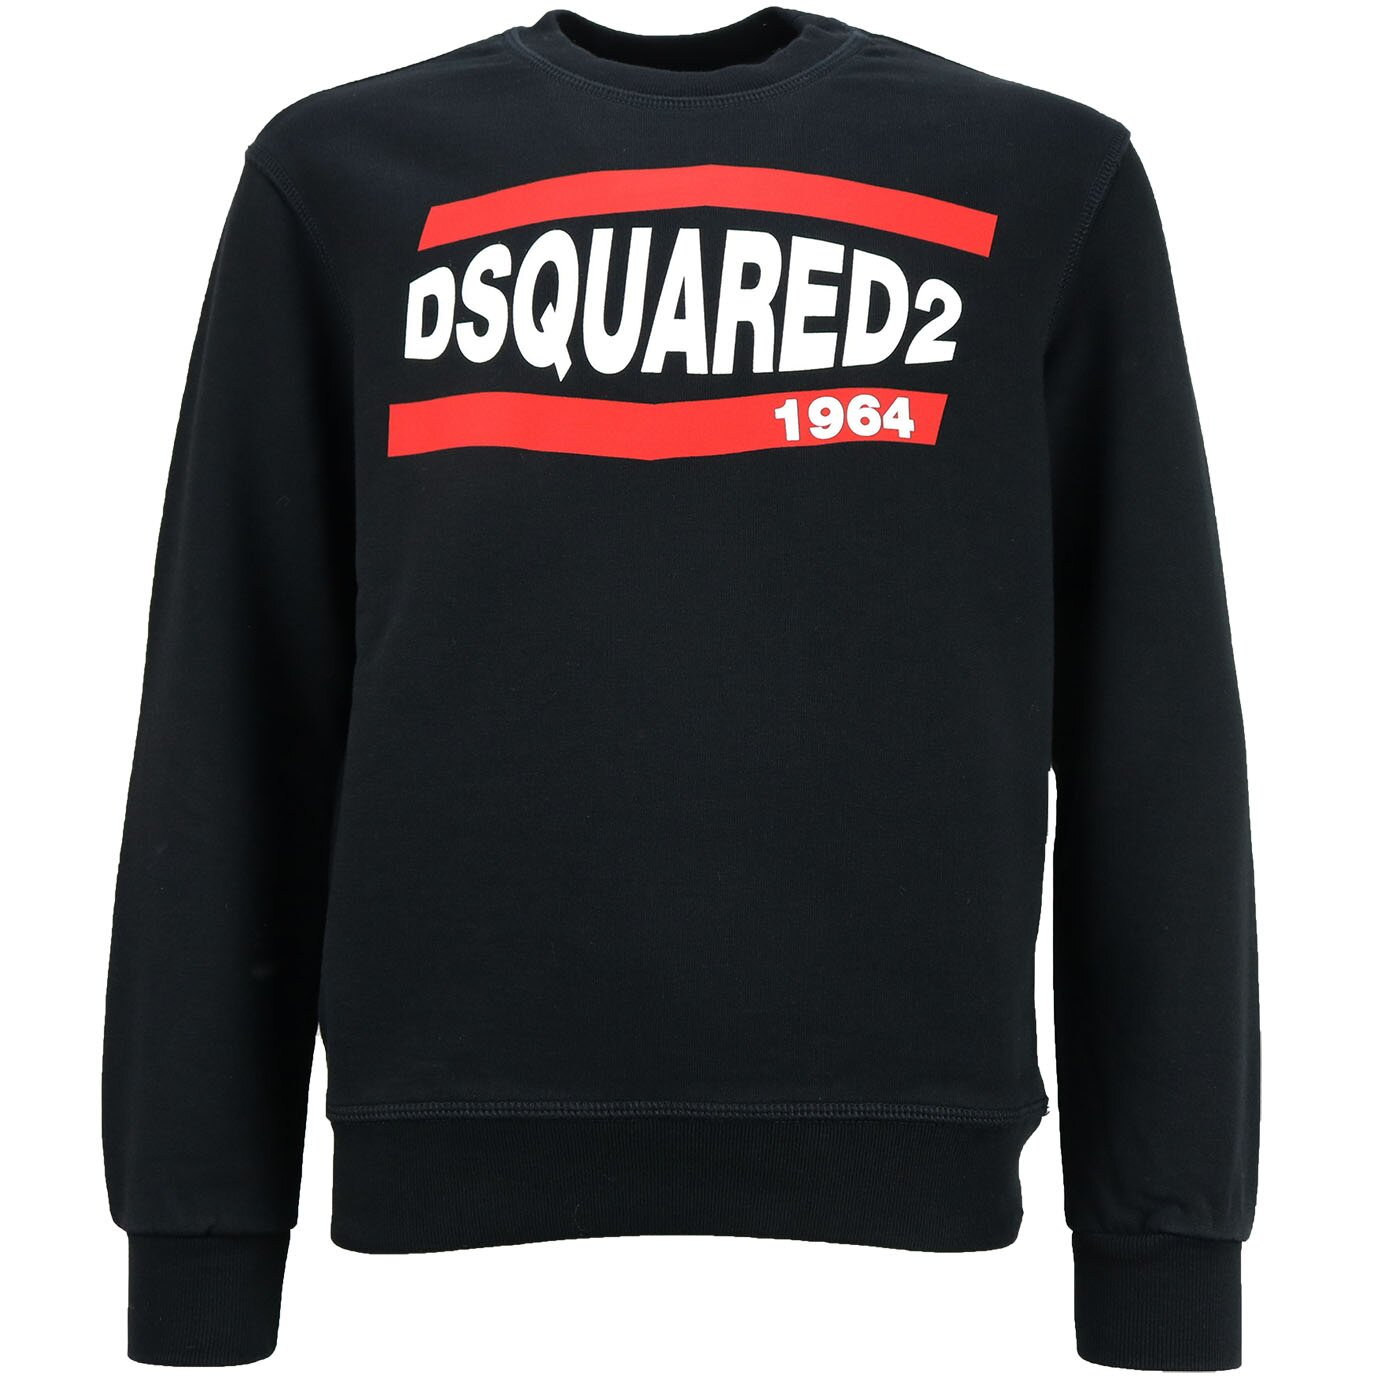 Dsquared2 Sweater 1964 Zwart relax fit